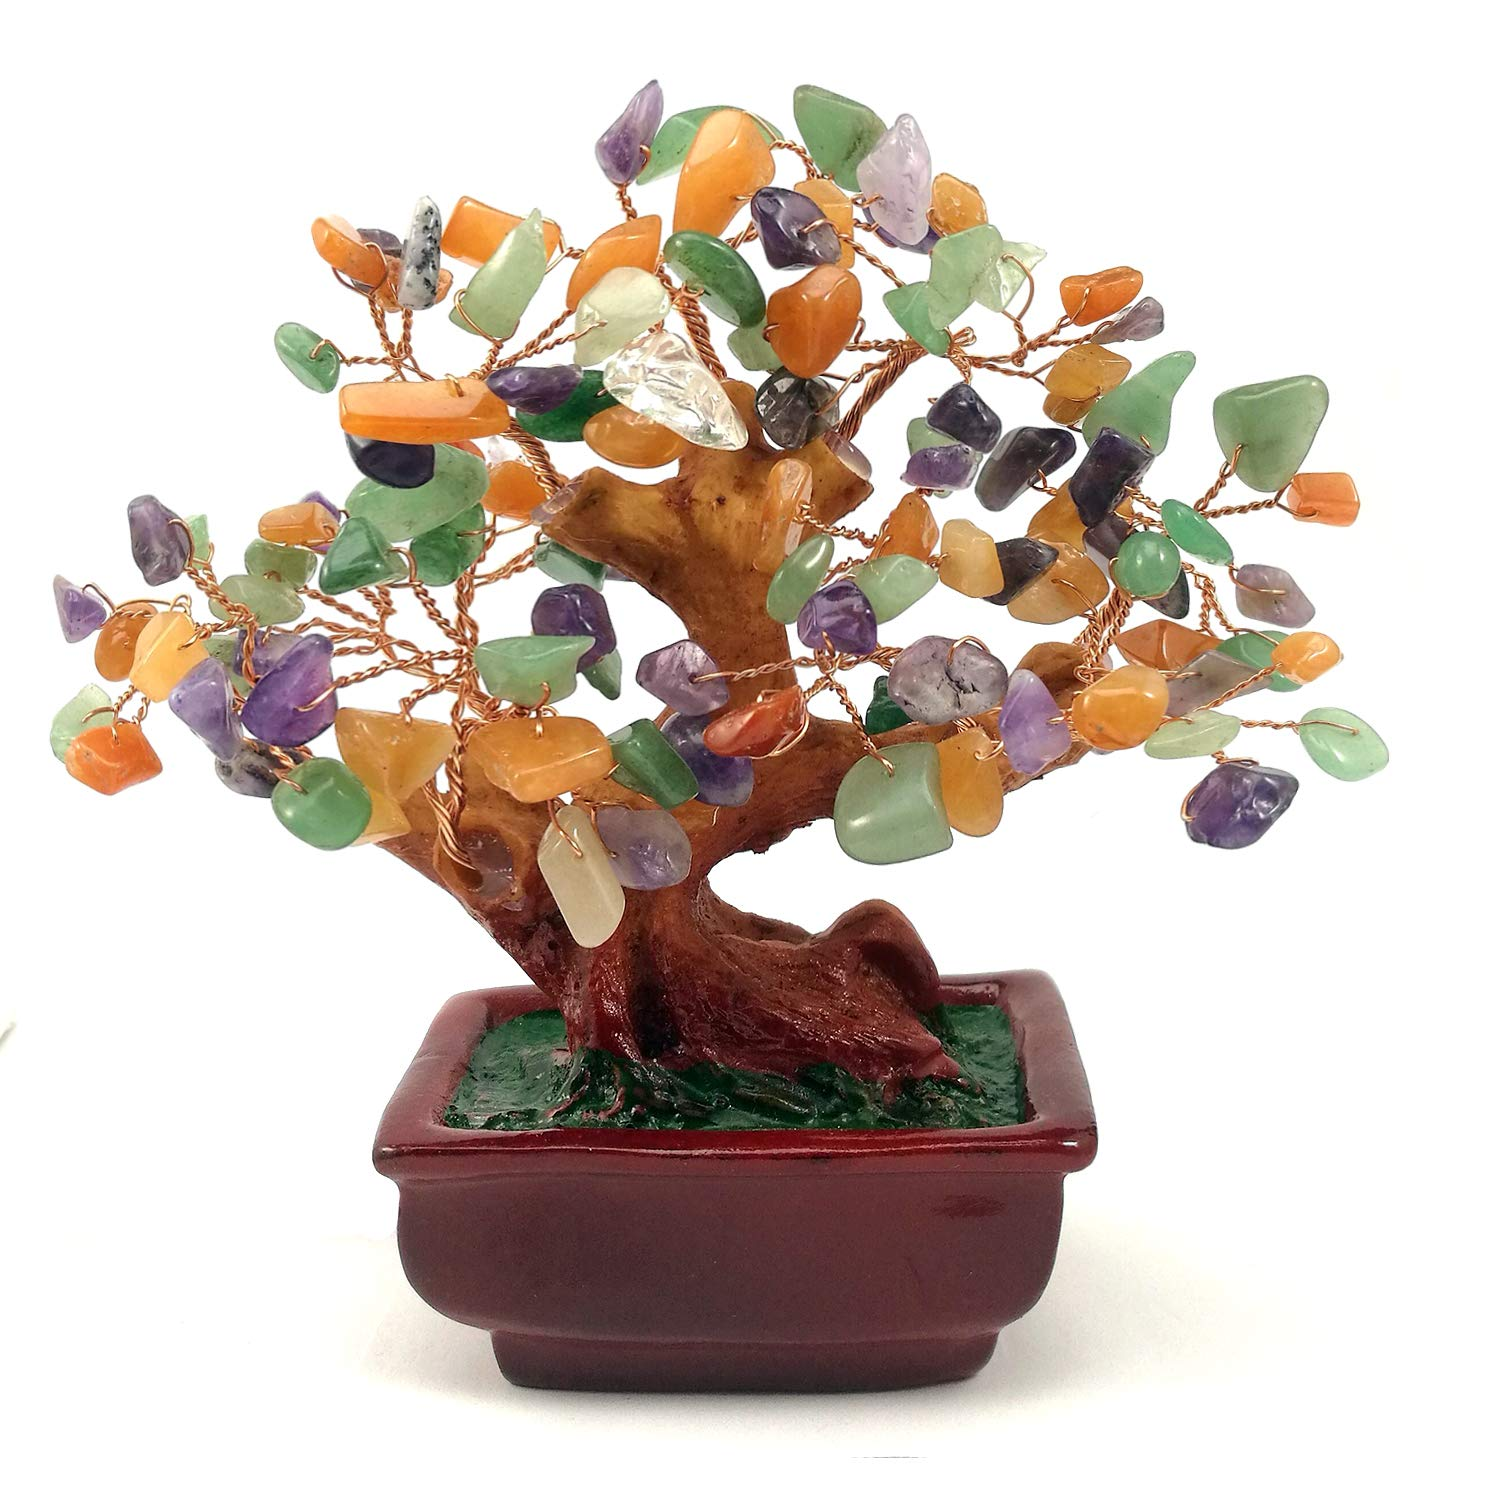 Natural Multicolor Crystal Money Tree, Rainbow Mix Gem Stone Money Tree-amethyst, Quartz Cluster Base Bonsai Sculpture Figurine for Wealth and Luck